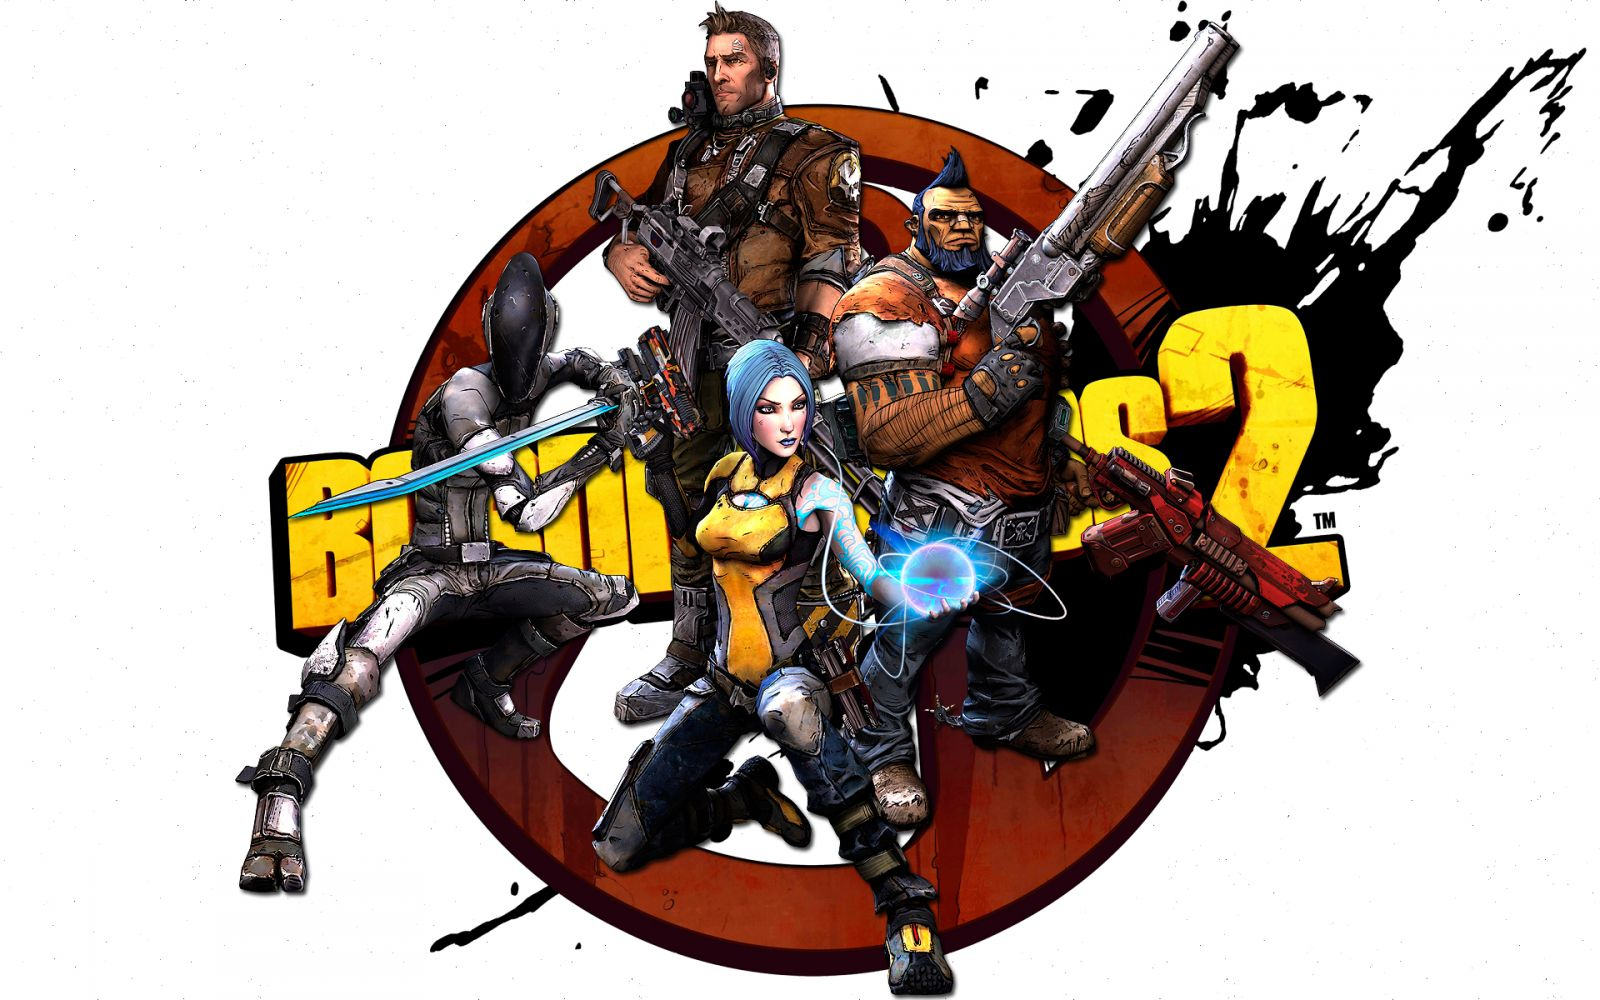 game reviews: Borderlands 2 Classes Review